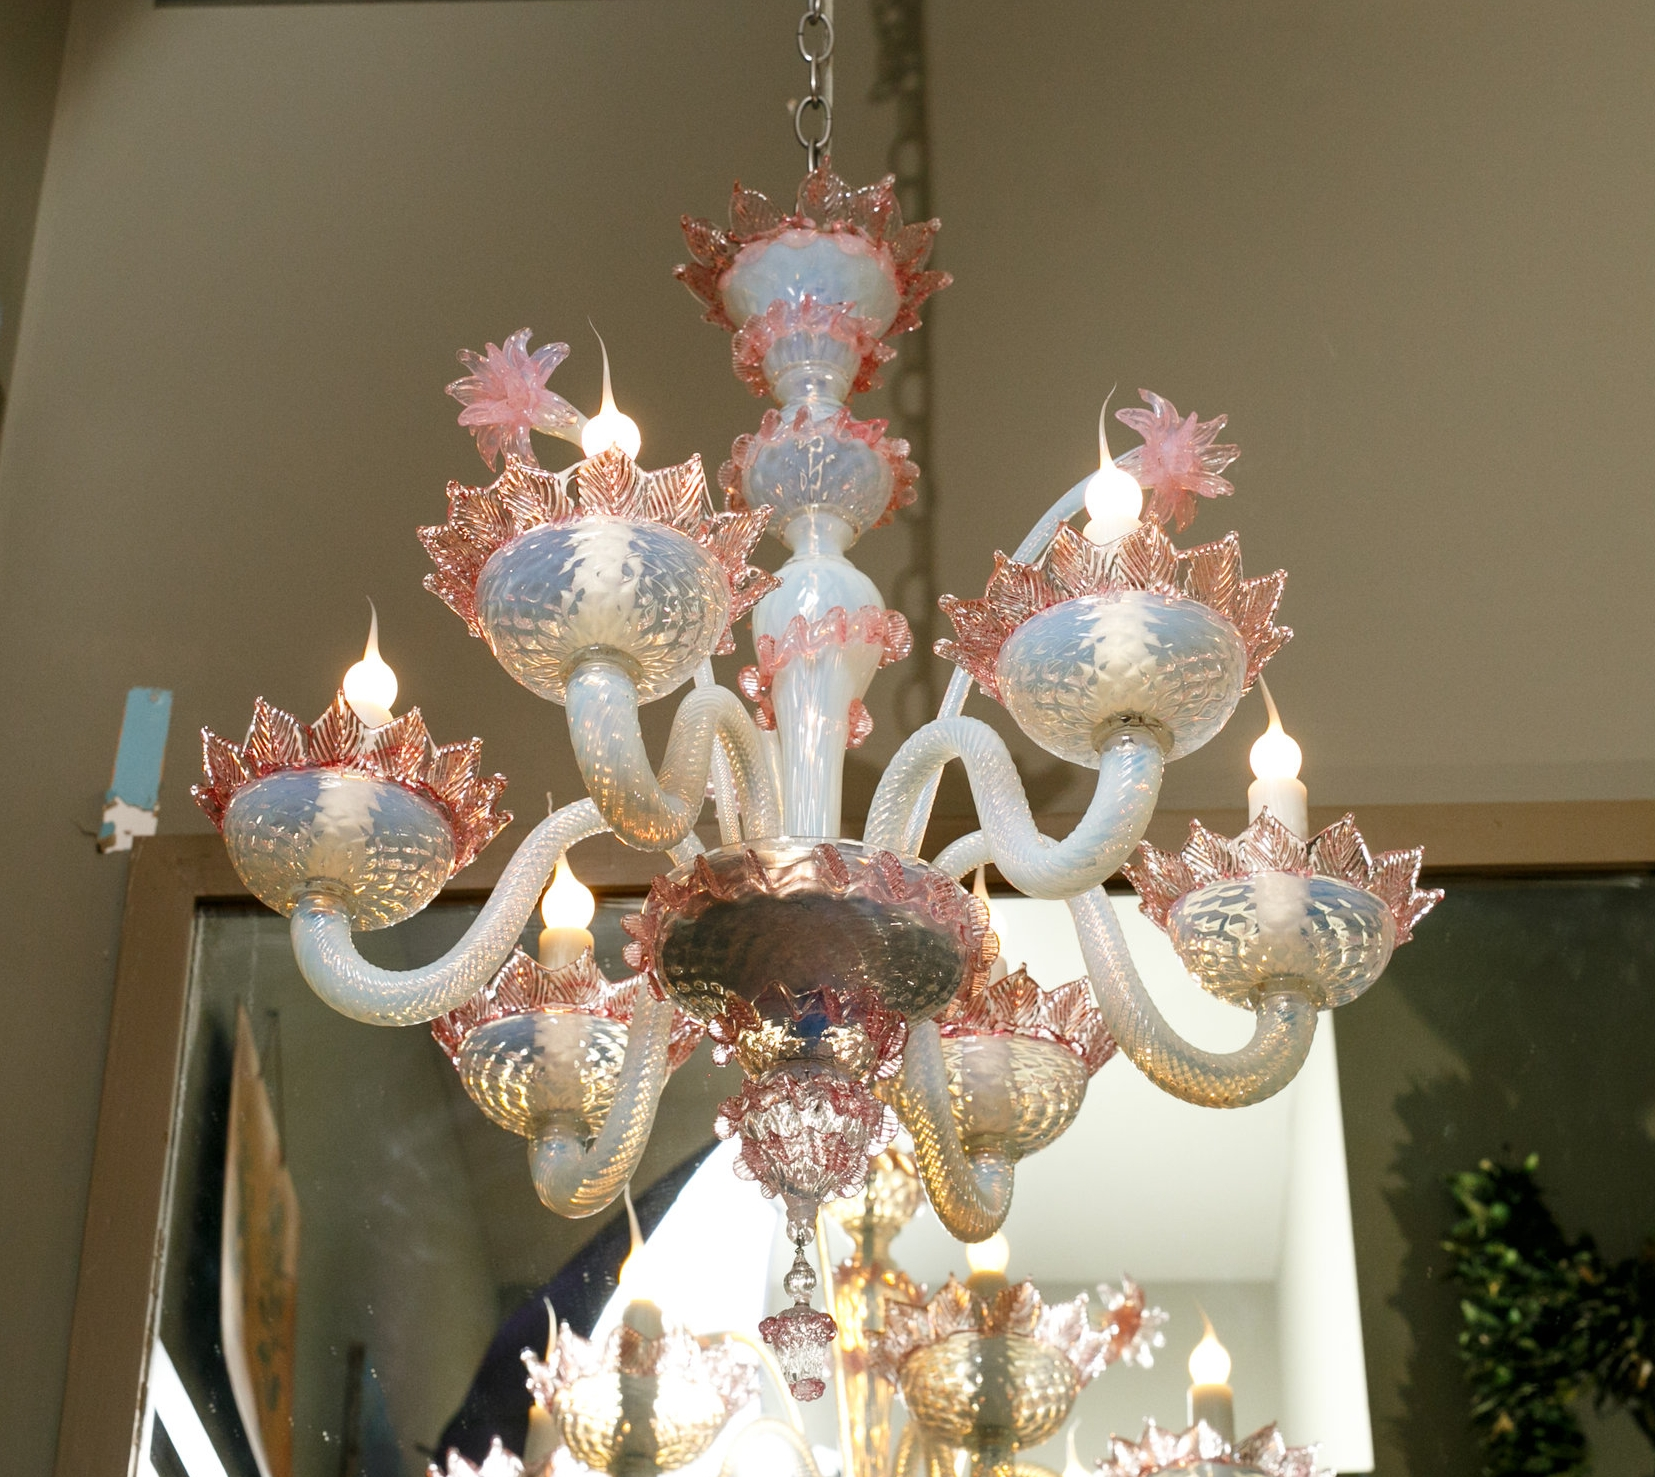 Vintage Pink and White Murano Glass Chandelier